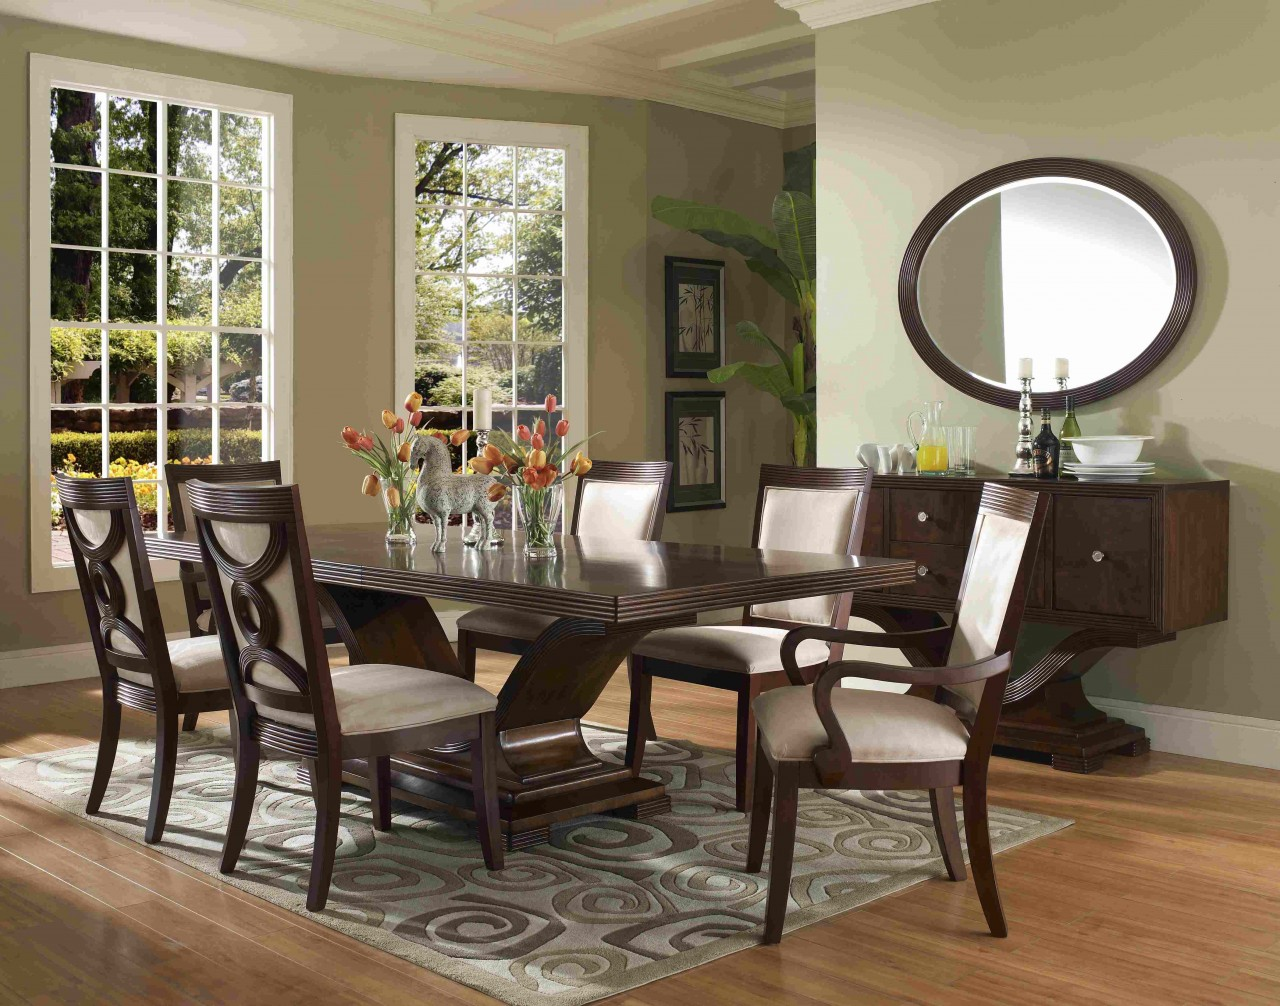 Perfect Formal Dining Room Sets for 8 HomesFeed : White Wooden Formal Dining Room Sets For 8 With Cabinet And Round Mirror from homesfeed.com size 1280 x 1006 jpeg 313kB